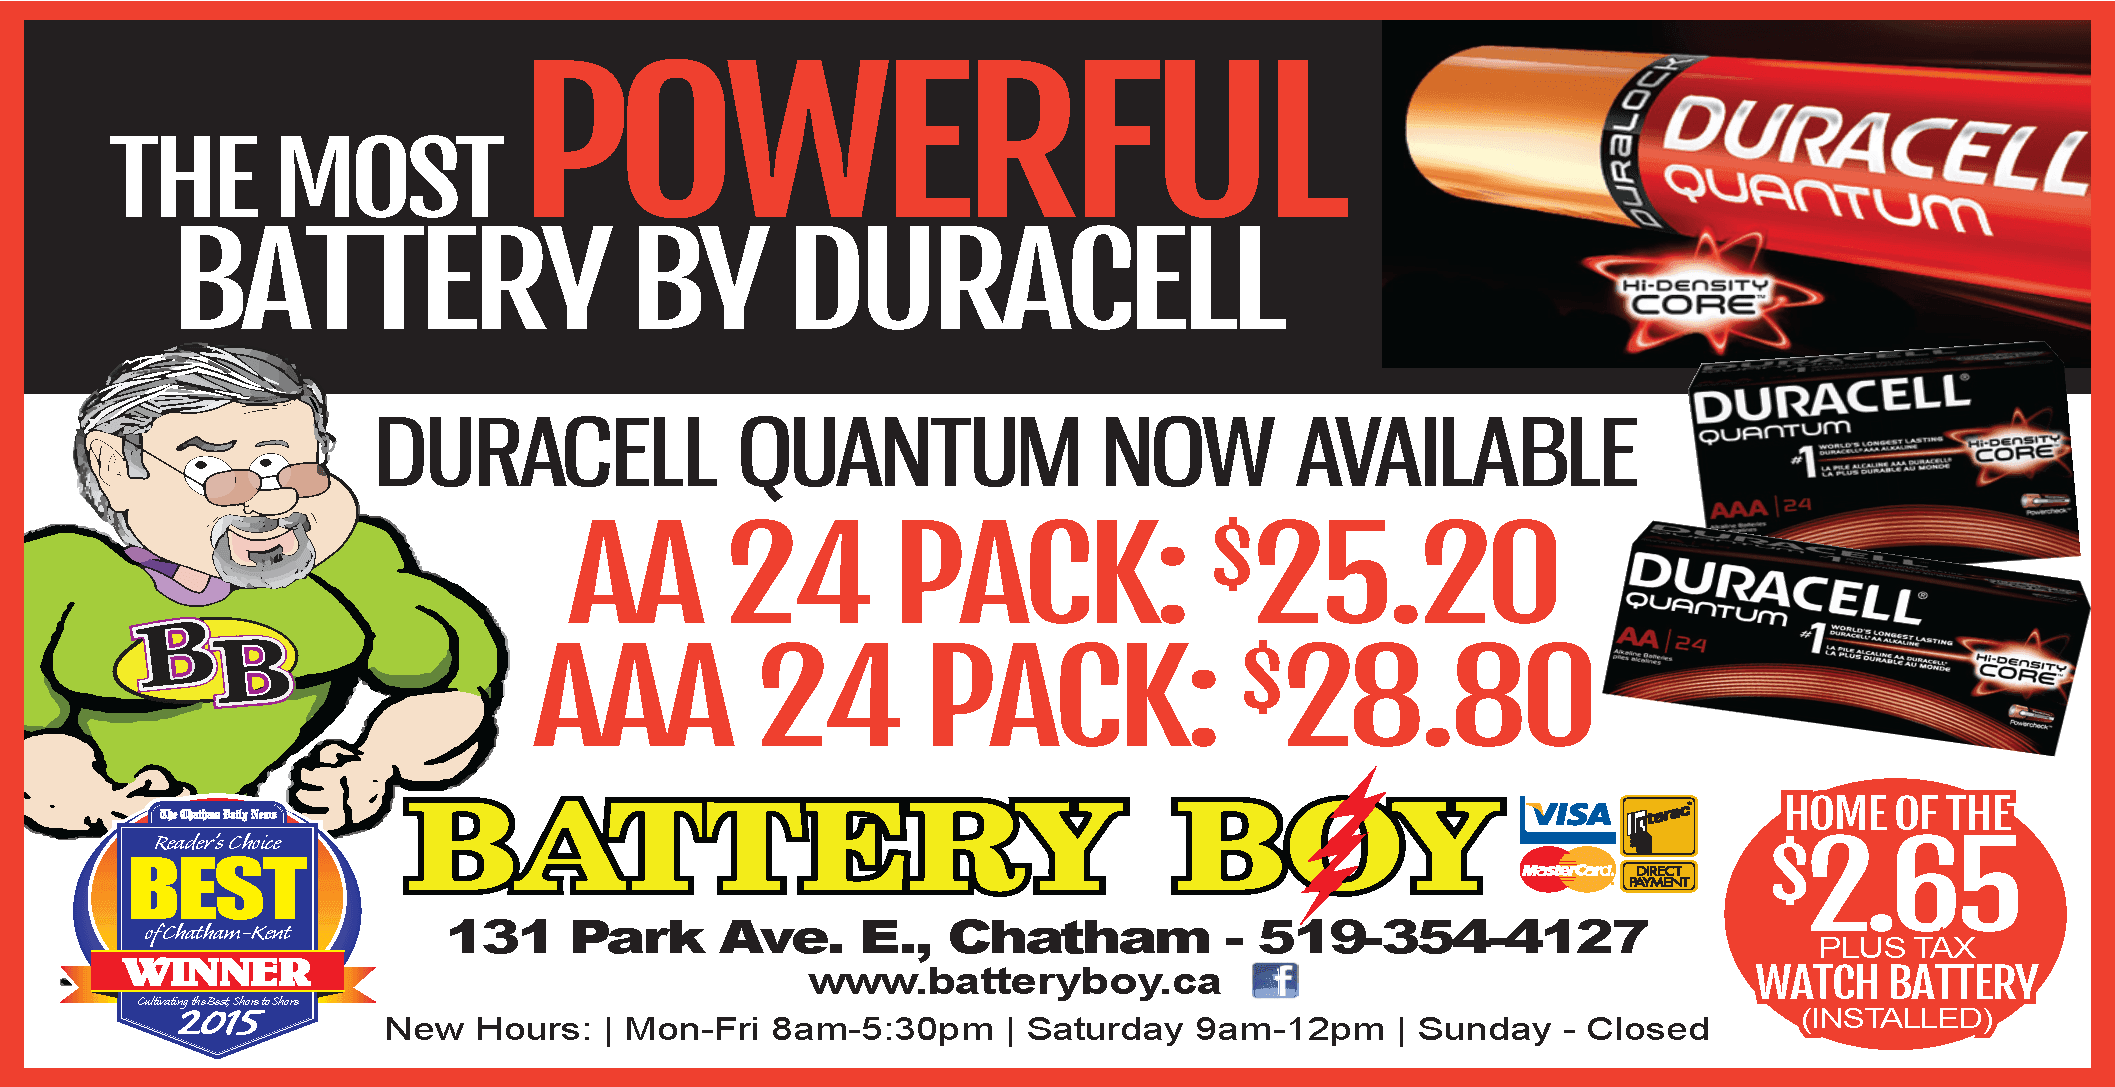 Battery Boy - Duracell Quantum - 138 - May 27